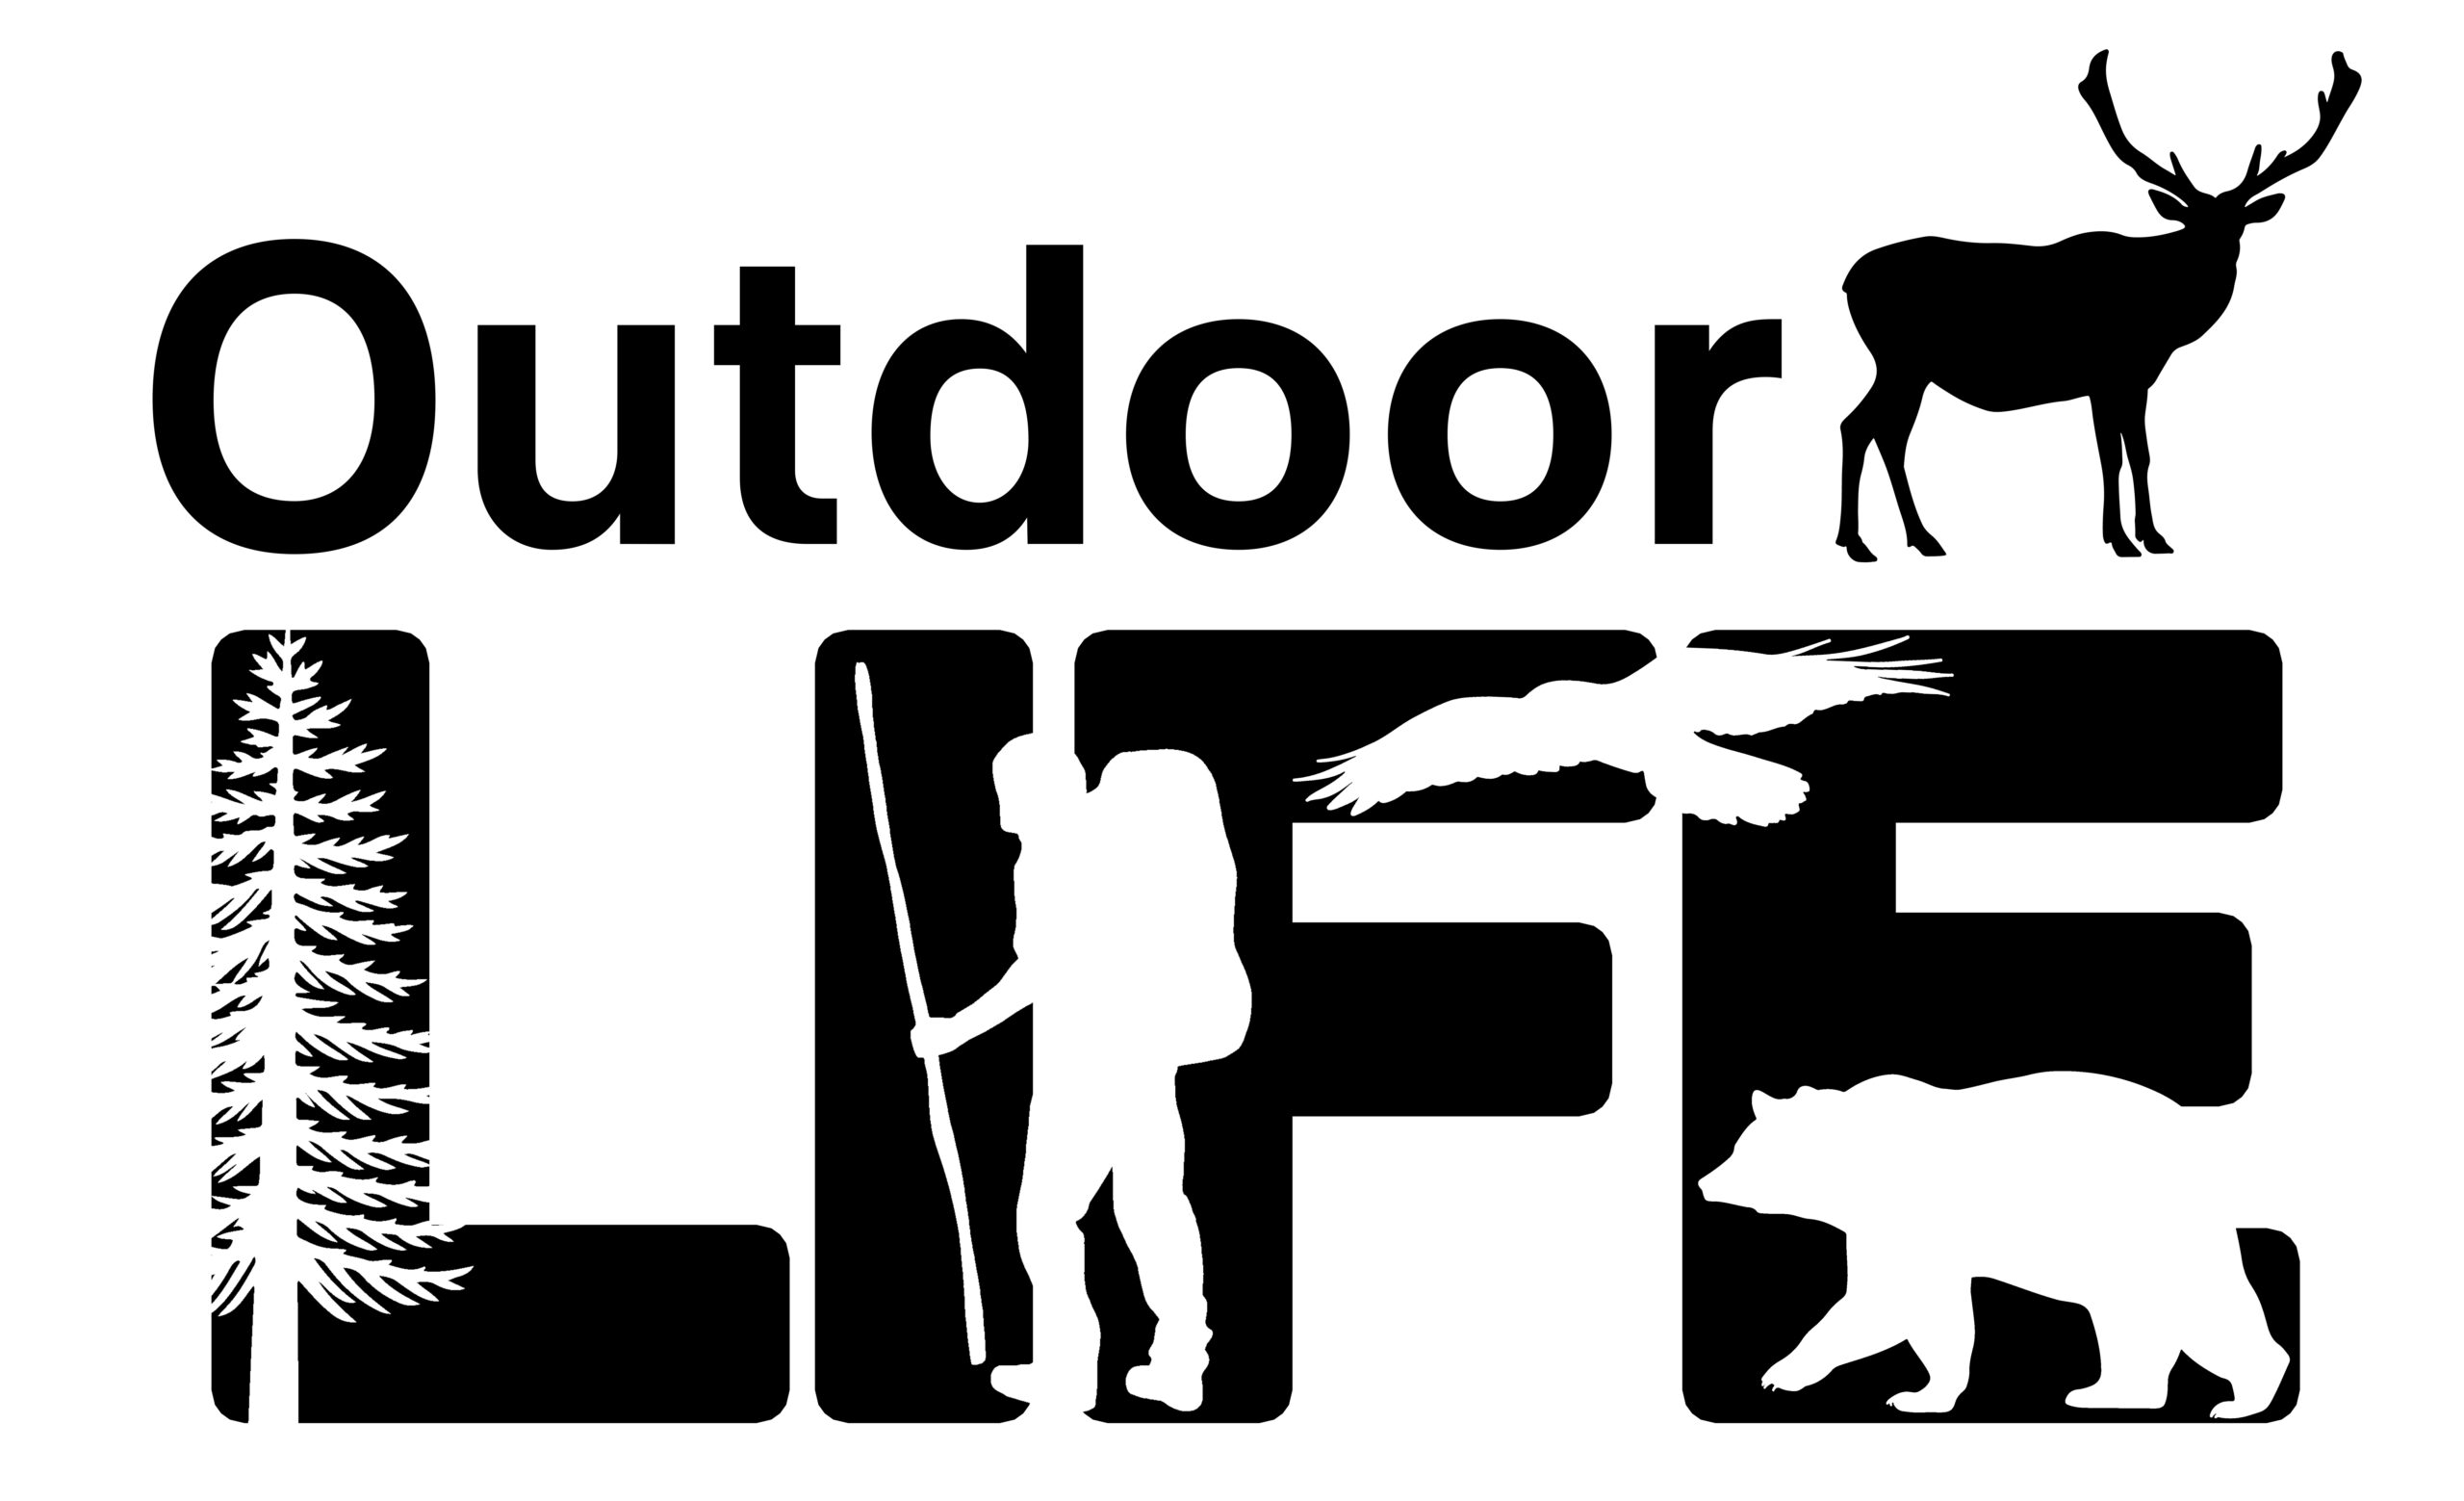 Free Outdoor LIFE SVG File